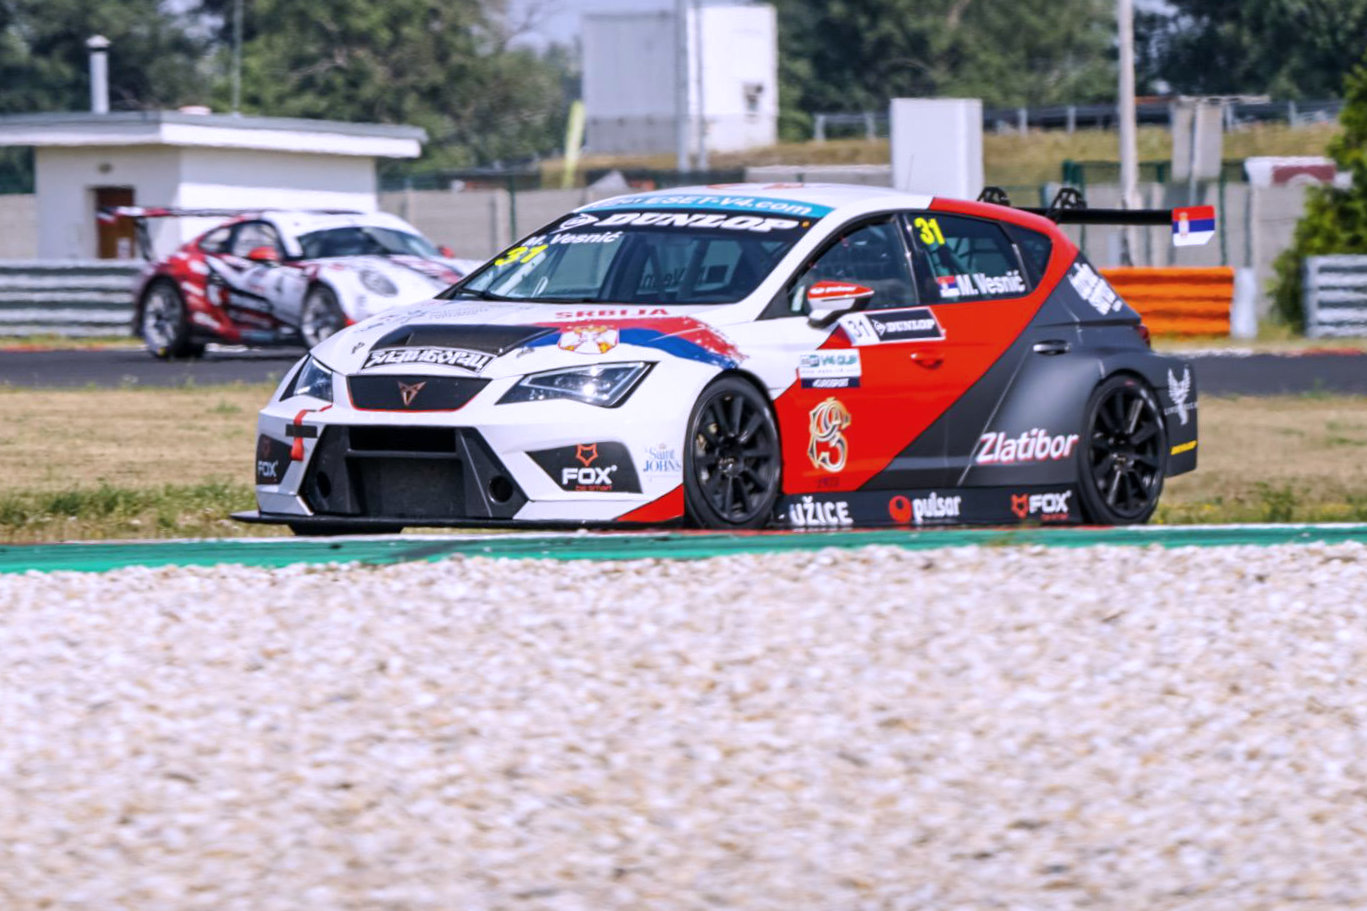 ESET V4 Cup to offer standalone TCR races in 2019